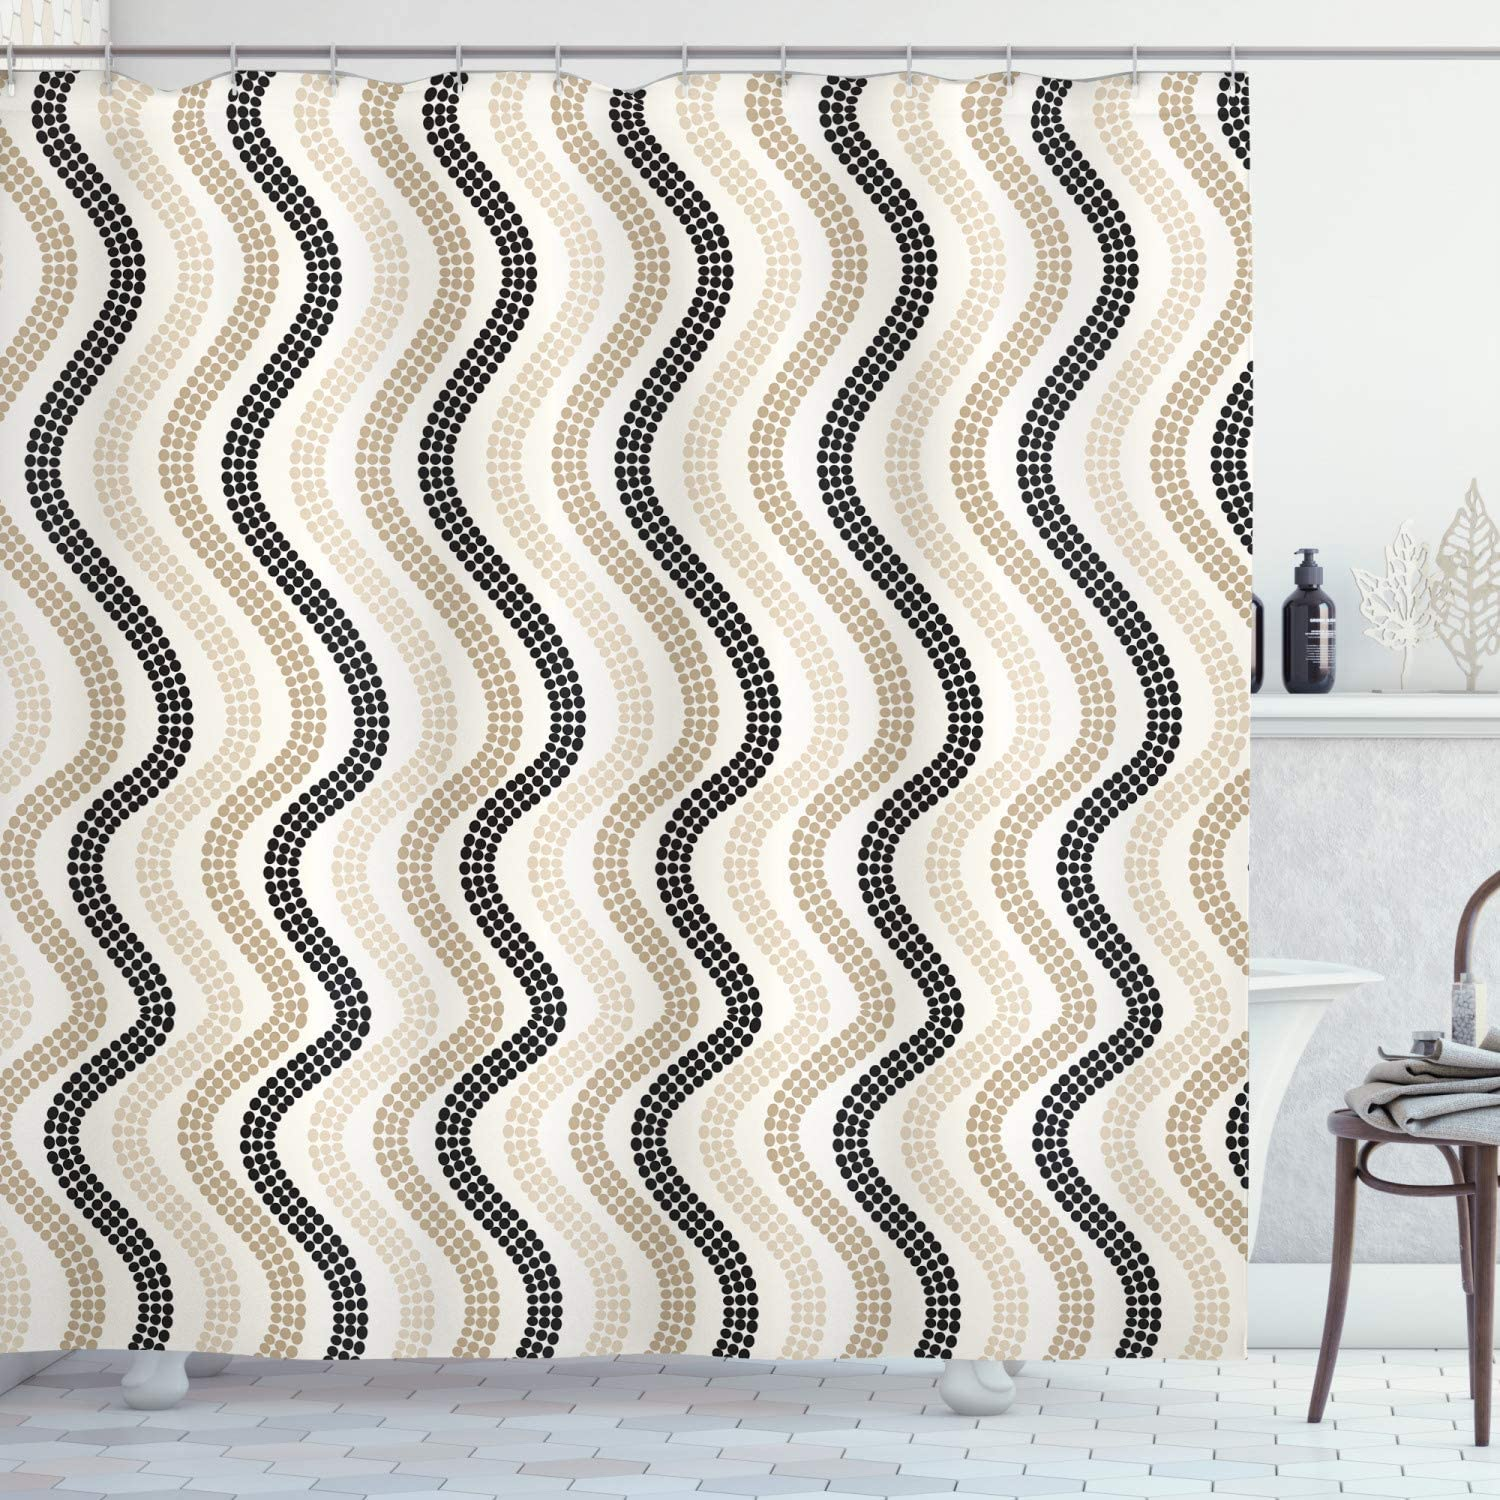 Lunarable Cream Shower Curtain, Vertical Wavy Lines with Polka Dots Color Shade Abstract Retro Repeating Pattern, Cloth Fabric Bathroom Decor Set with Hooks, 75